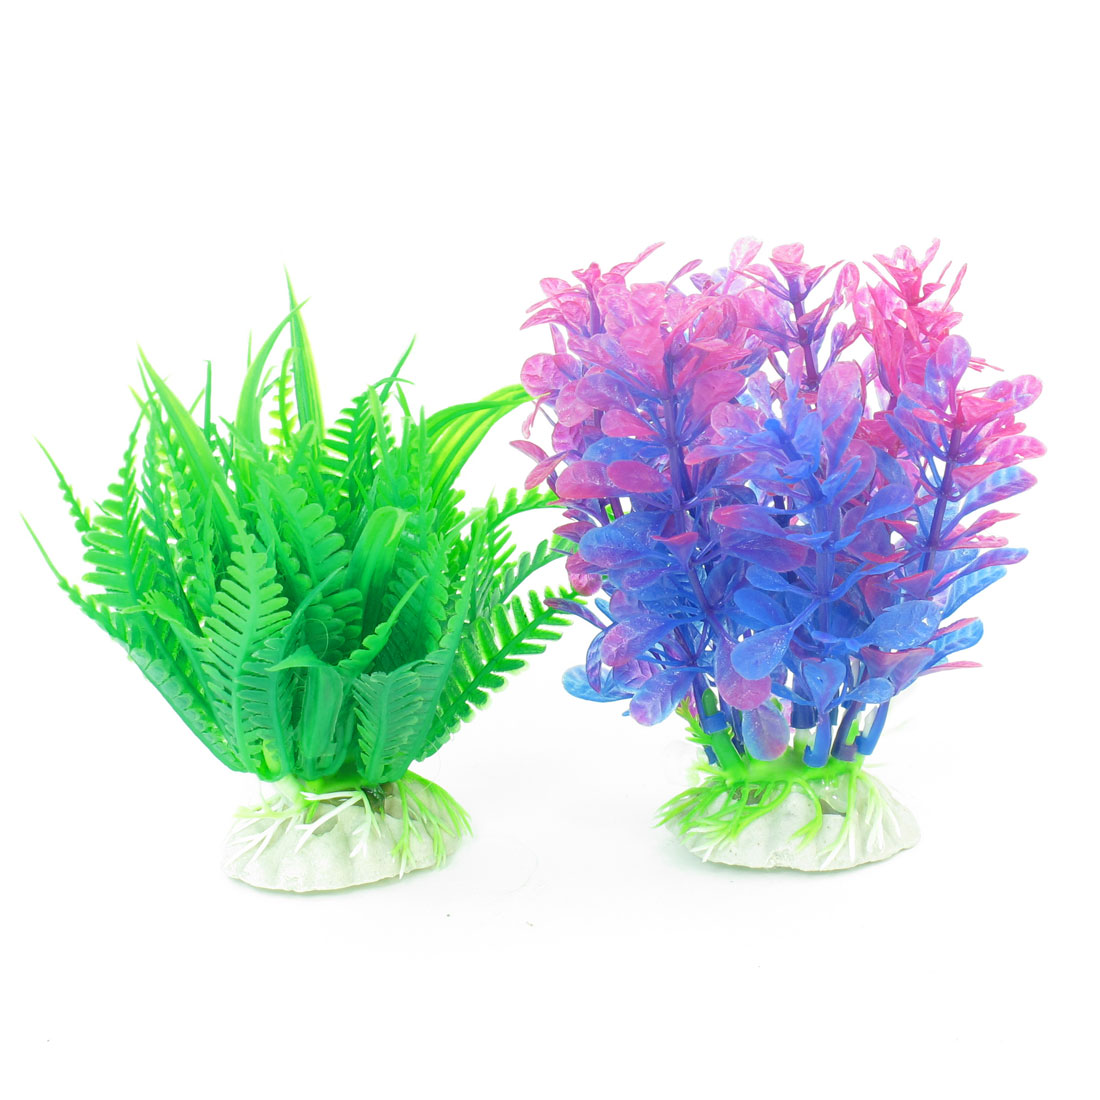 "2 Pcs Green Violet Blue Emulational Fish Tank Aquarium Grasses Decor 4.3"" High"